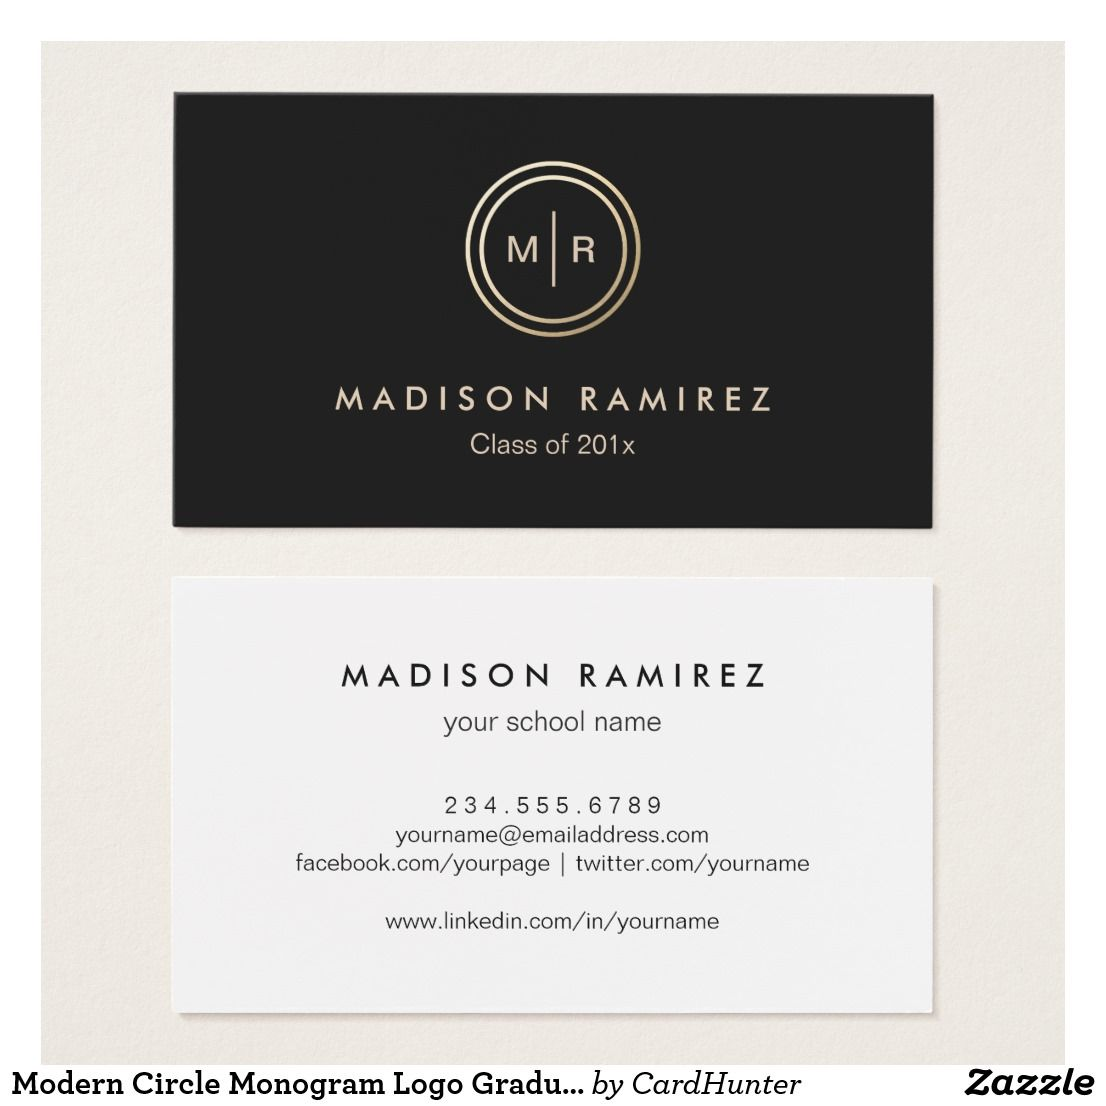 Modern Circle Monogram Logo Graduate Students Business Card ...